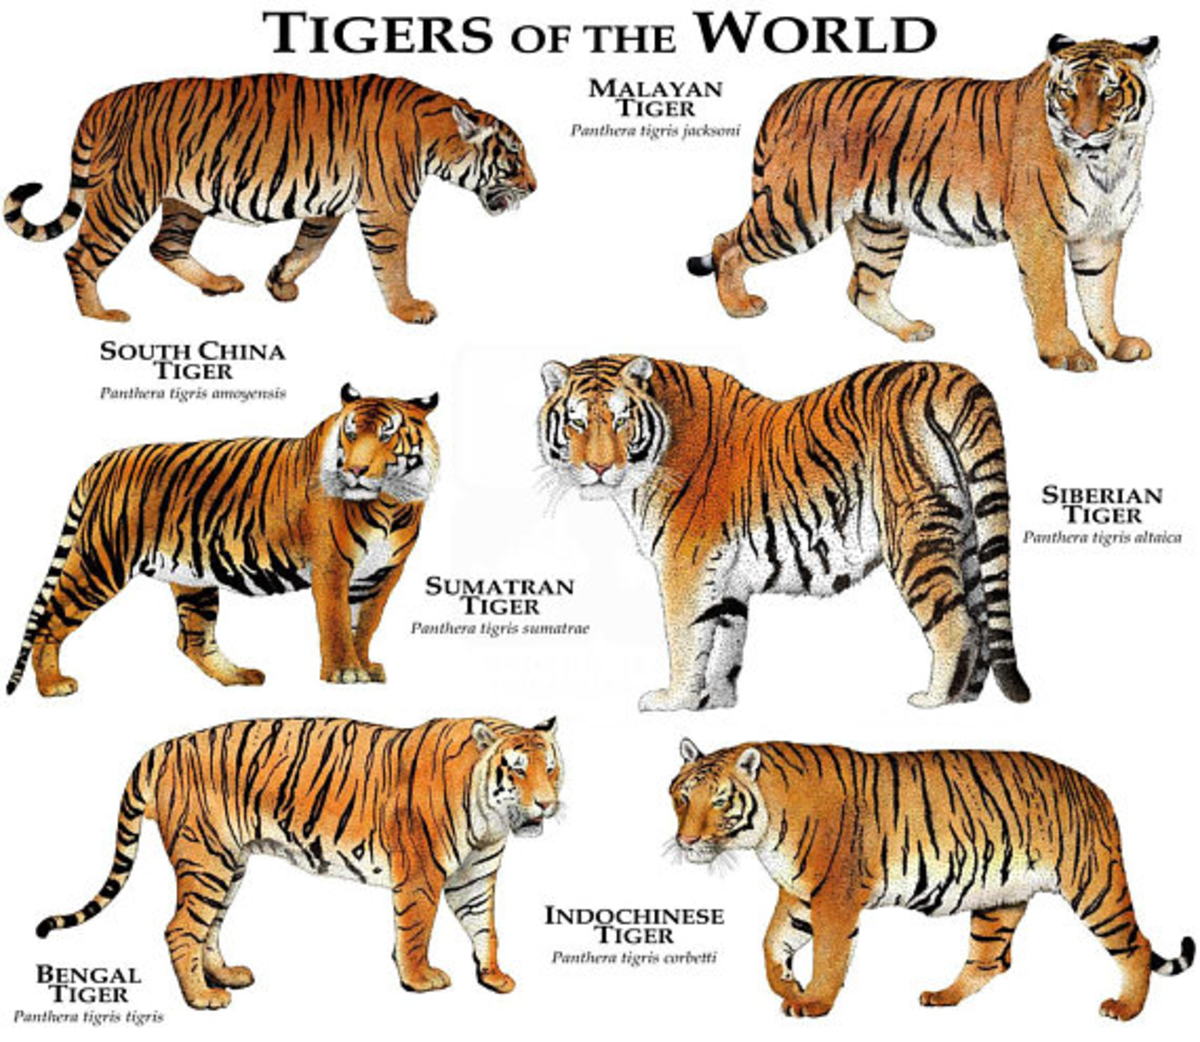 Tigers of the World!